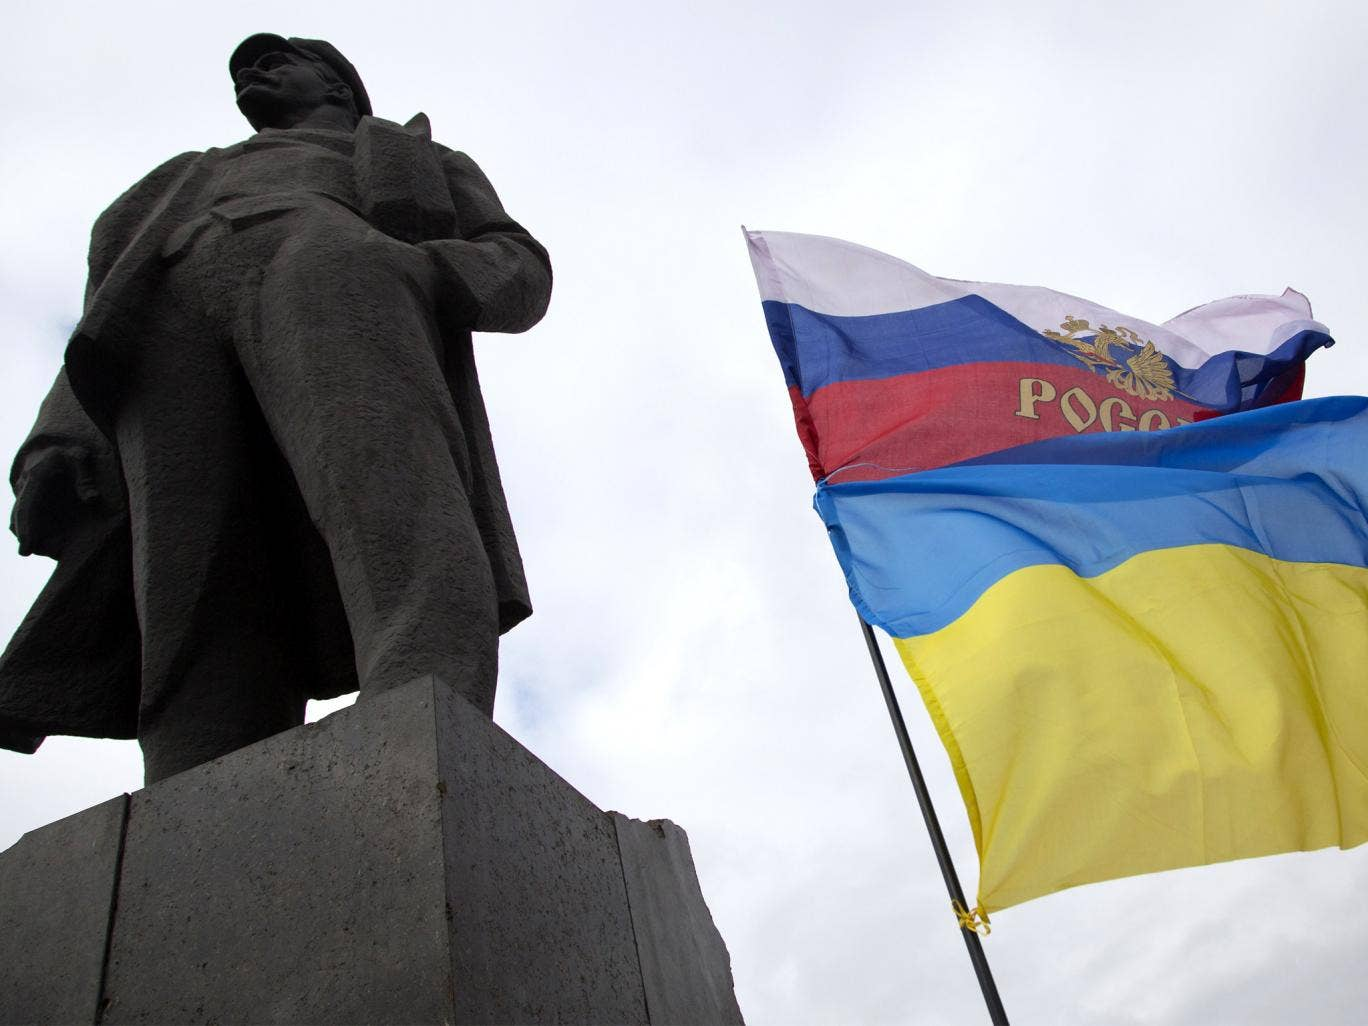 Russian and Ukrainian flags fly next to the statue of Vladimir Lenin, in Donetsk, eastern Ukraine